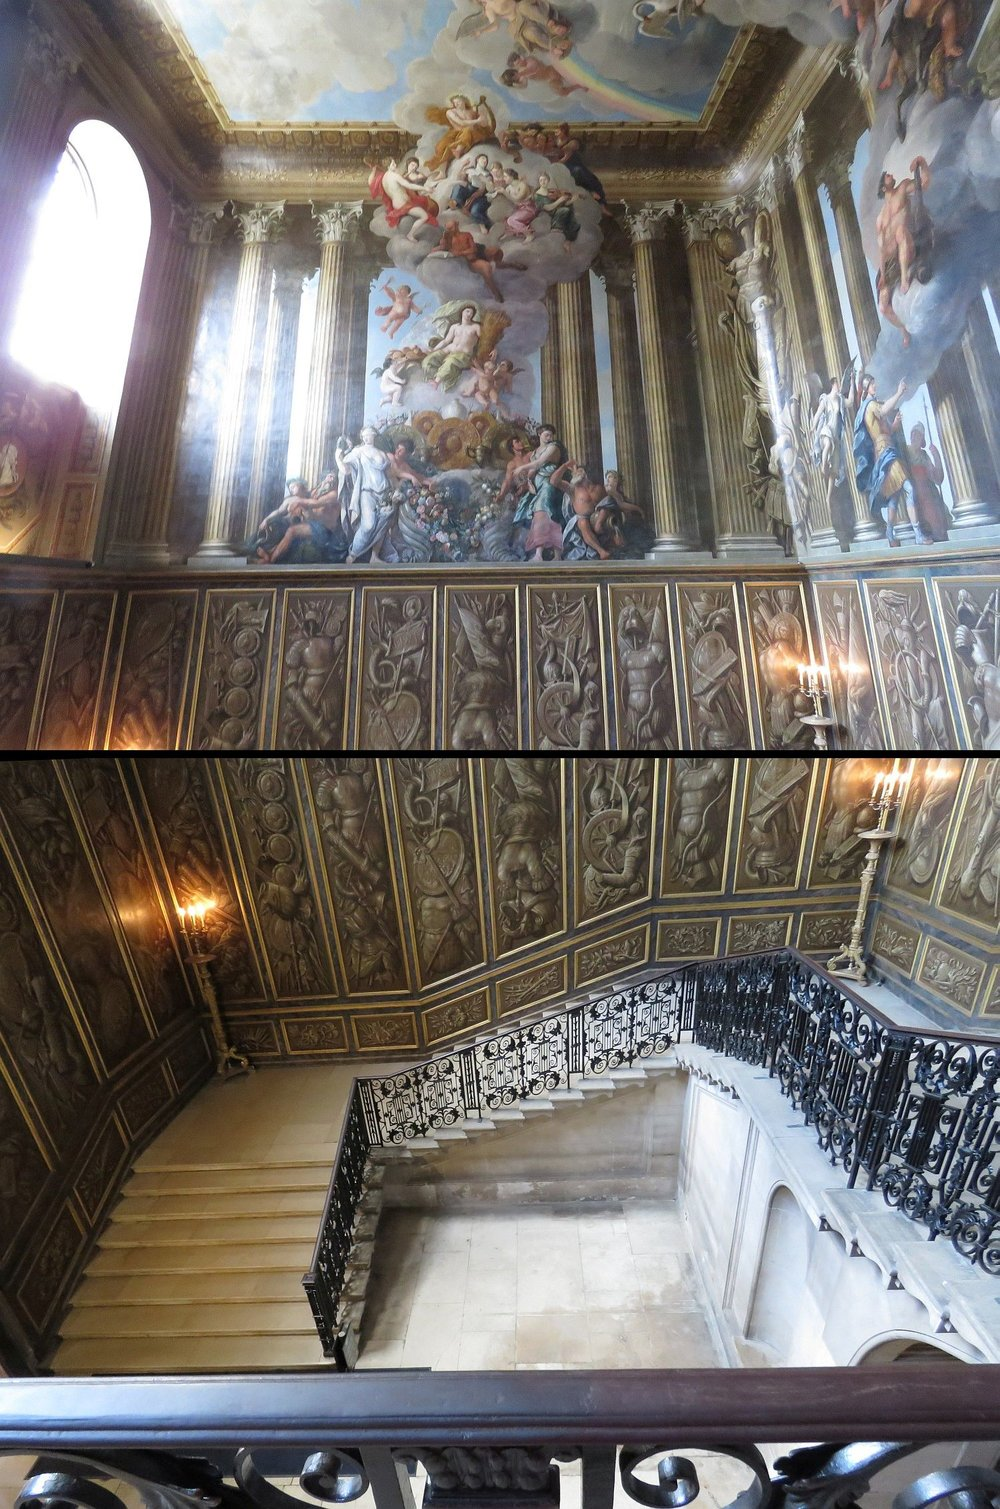 The Queen's Staircase (Queen Mary, wife of William), cobbled together by me to show the size and beauty.